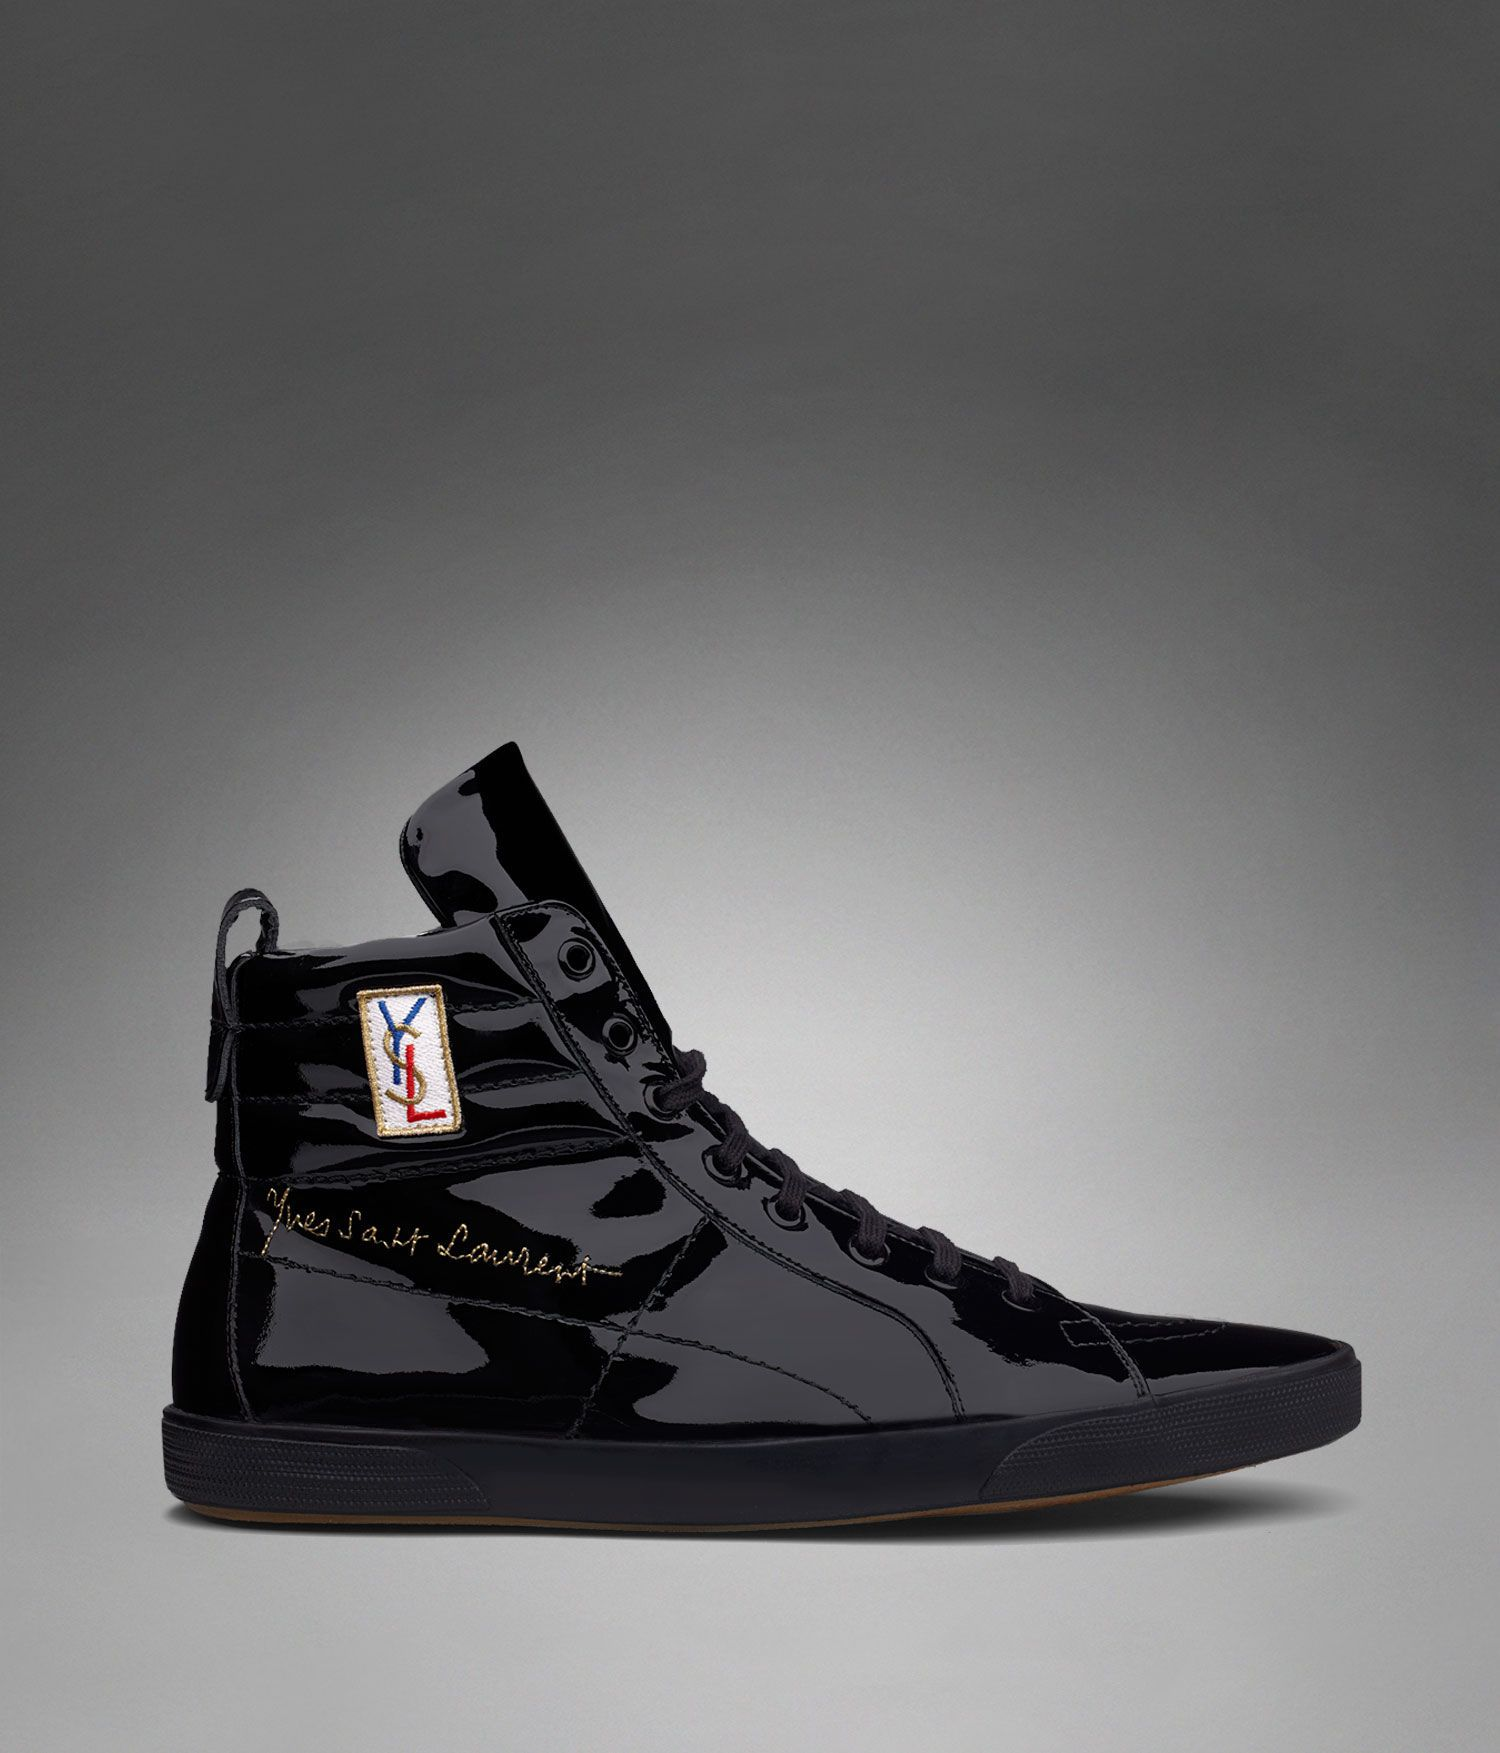 fde76477b8 Classic High-top Sneaker in Black Patent Leather - Yves Saint ...